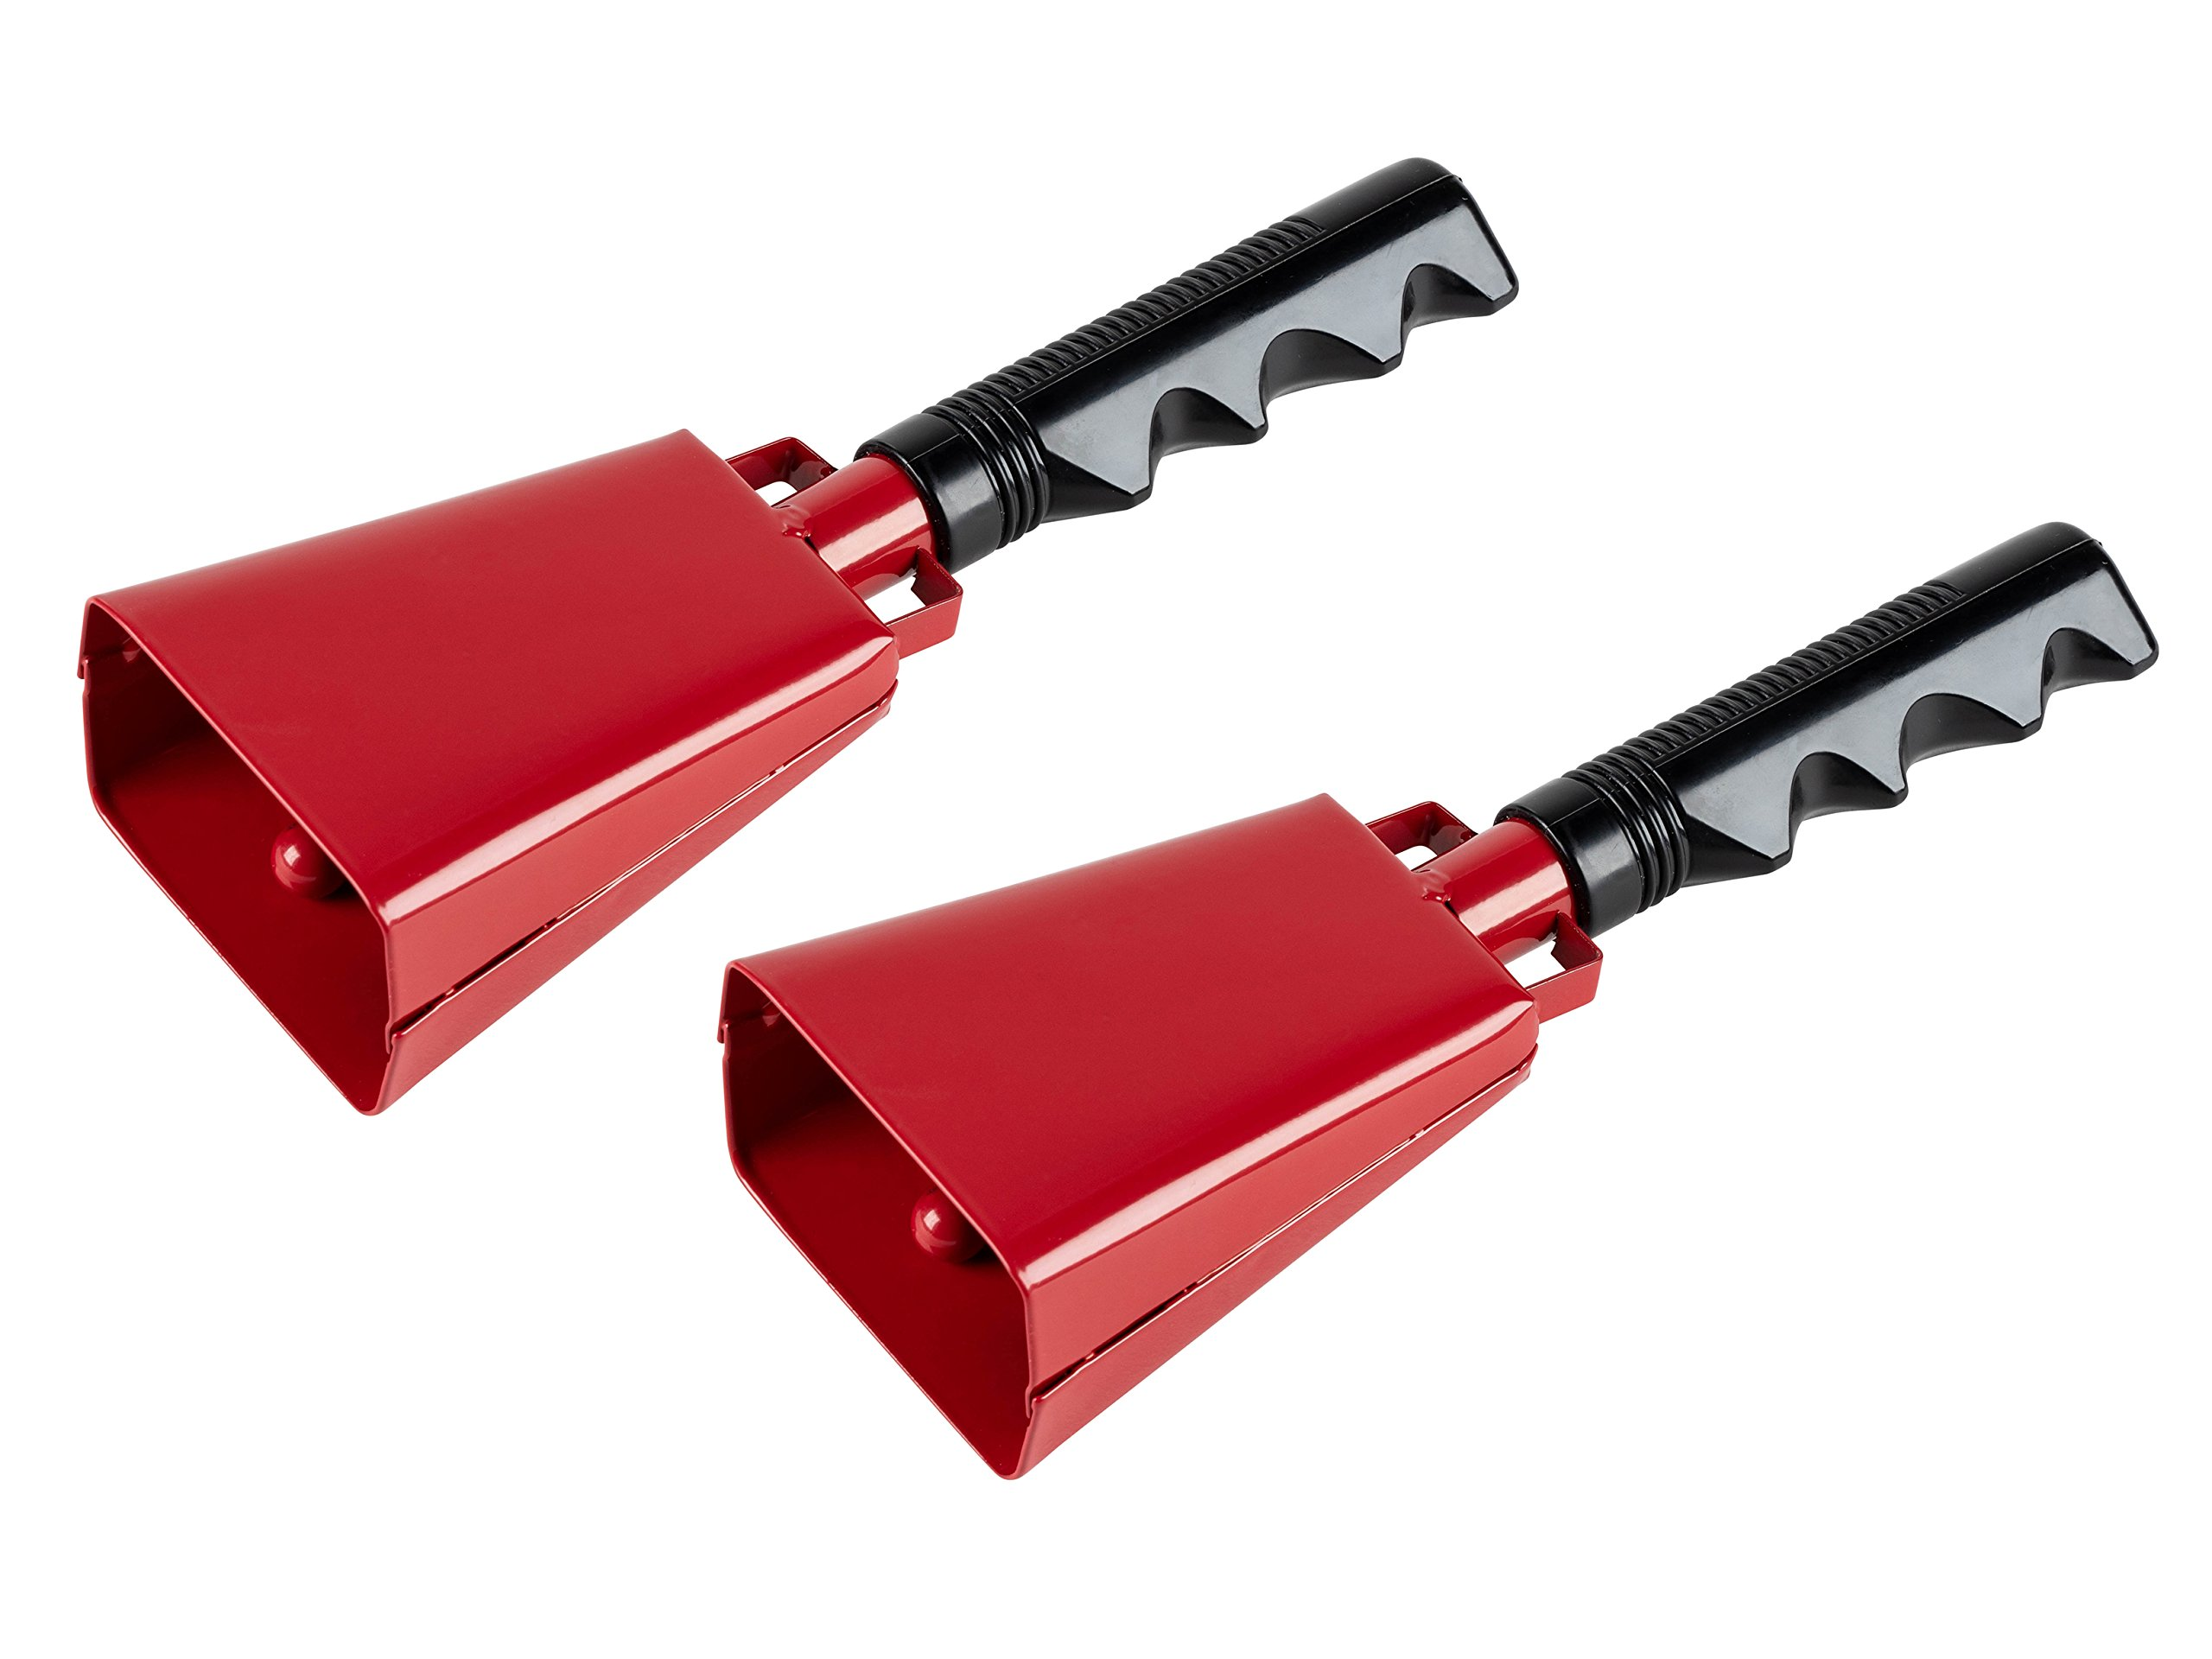 Cowbell with Handle - 2-Pack Cow Bell Noismakers, Loud Call Bells for Cheers, Sports Games, Weddings, Farm, Red, 3 x 9.125 x 2 Inches by Blue Panda